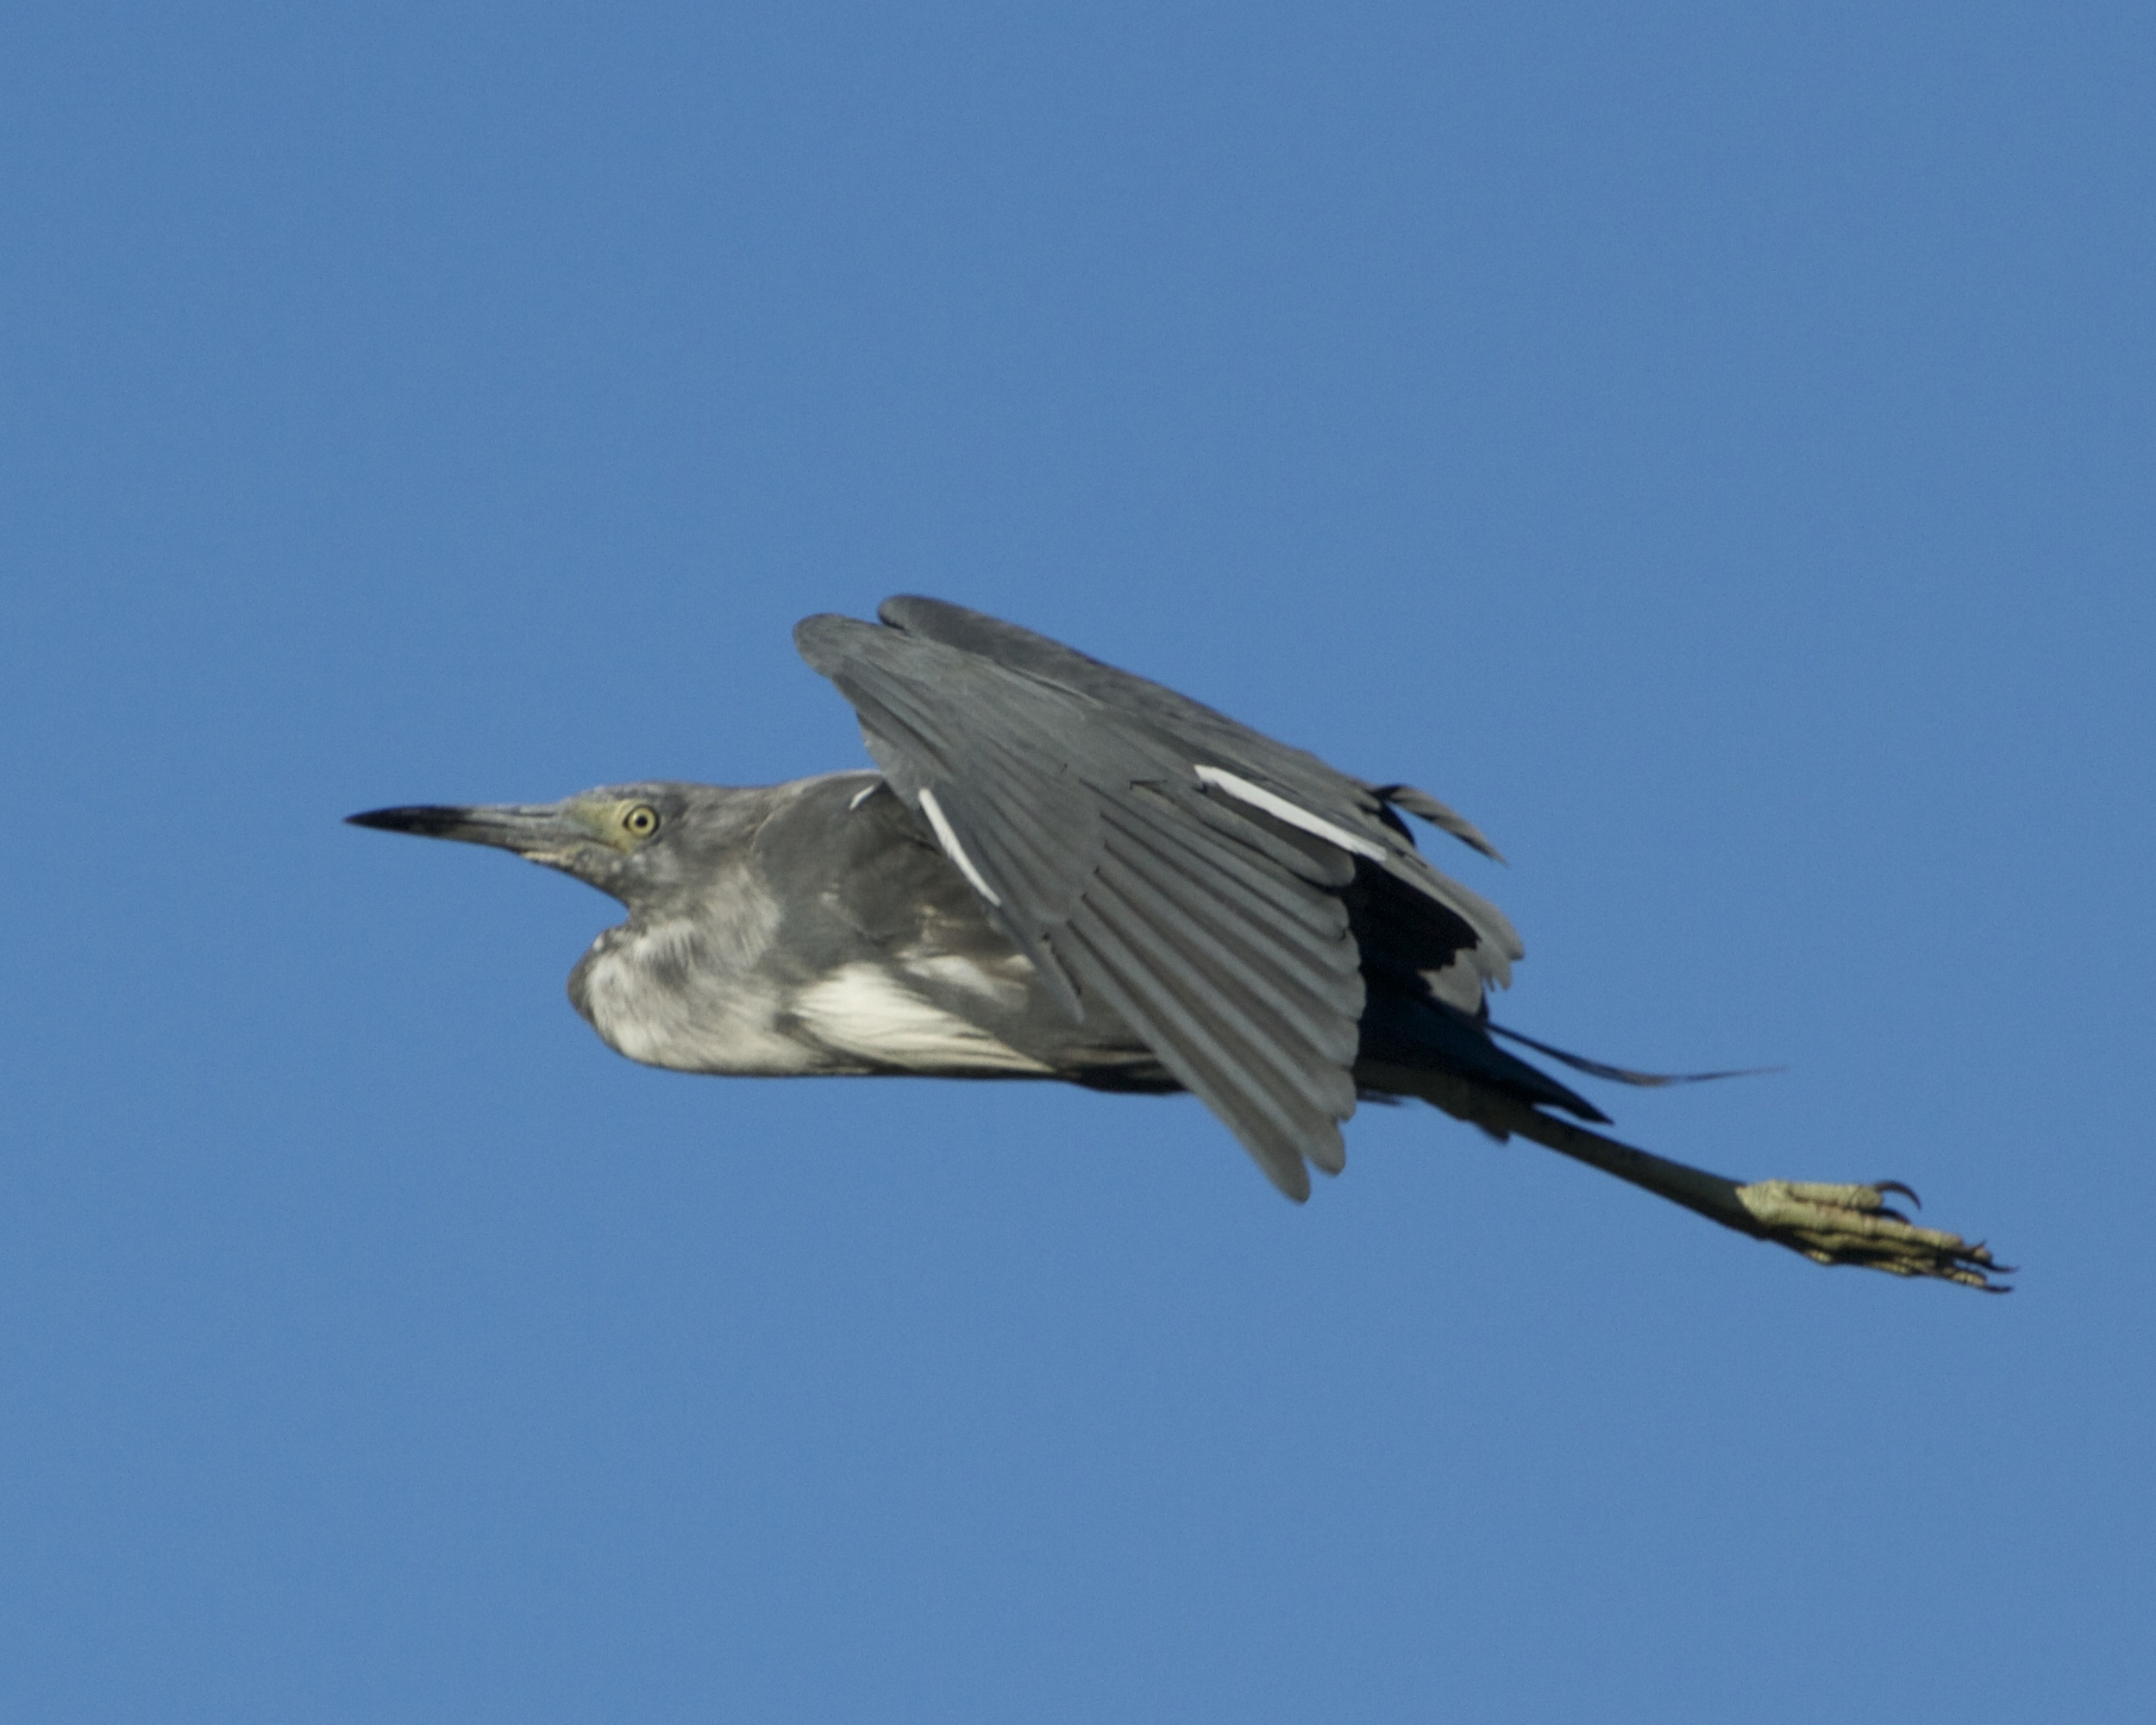 Juvenile Little Blue Heron lifts off.